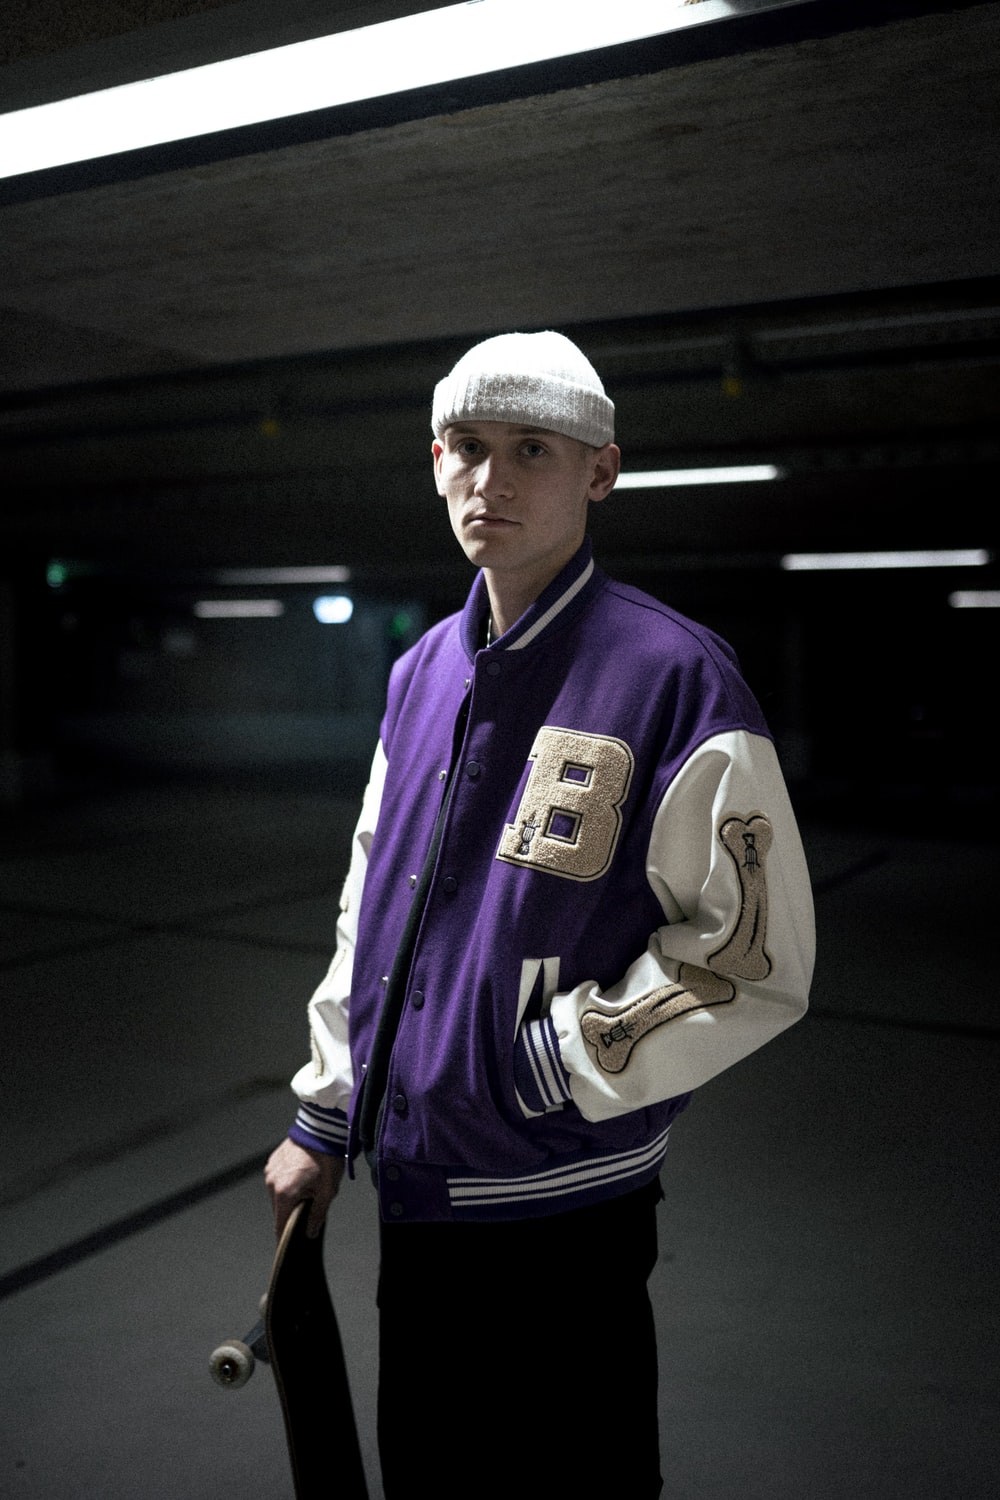 man in white knit cap and purple jacket